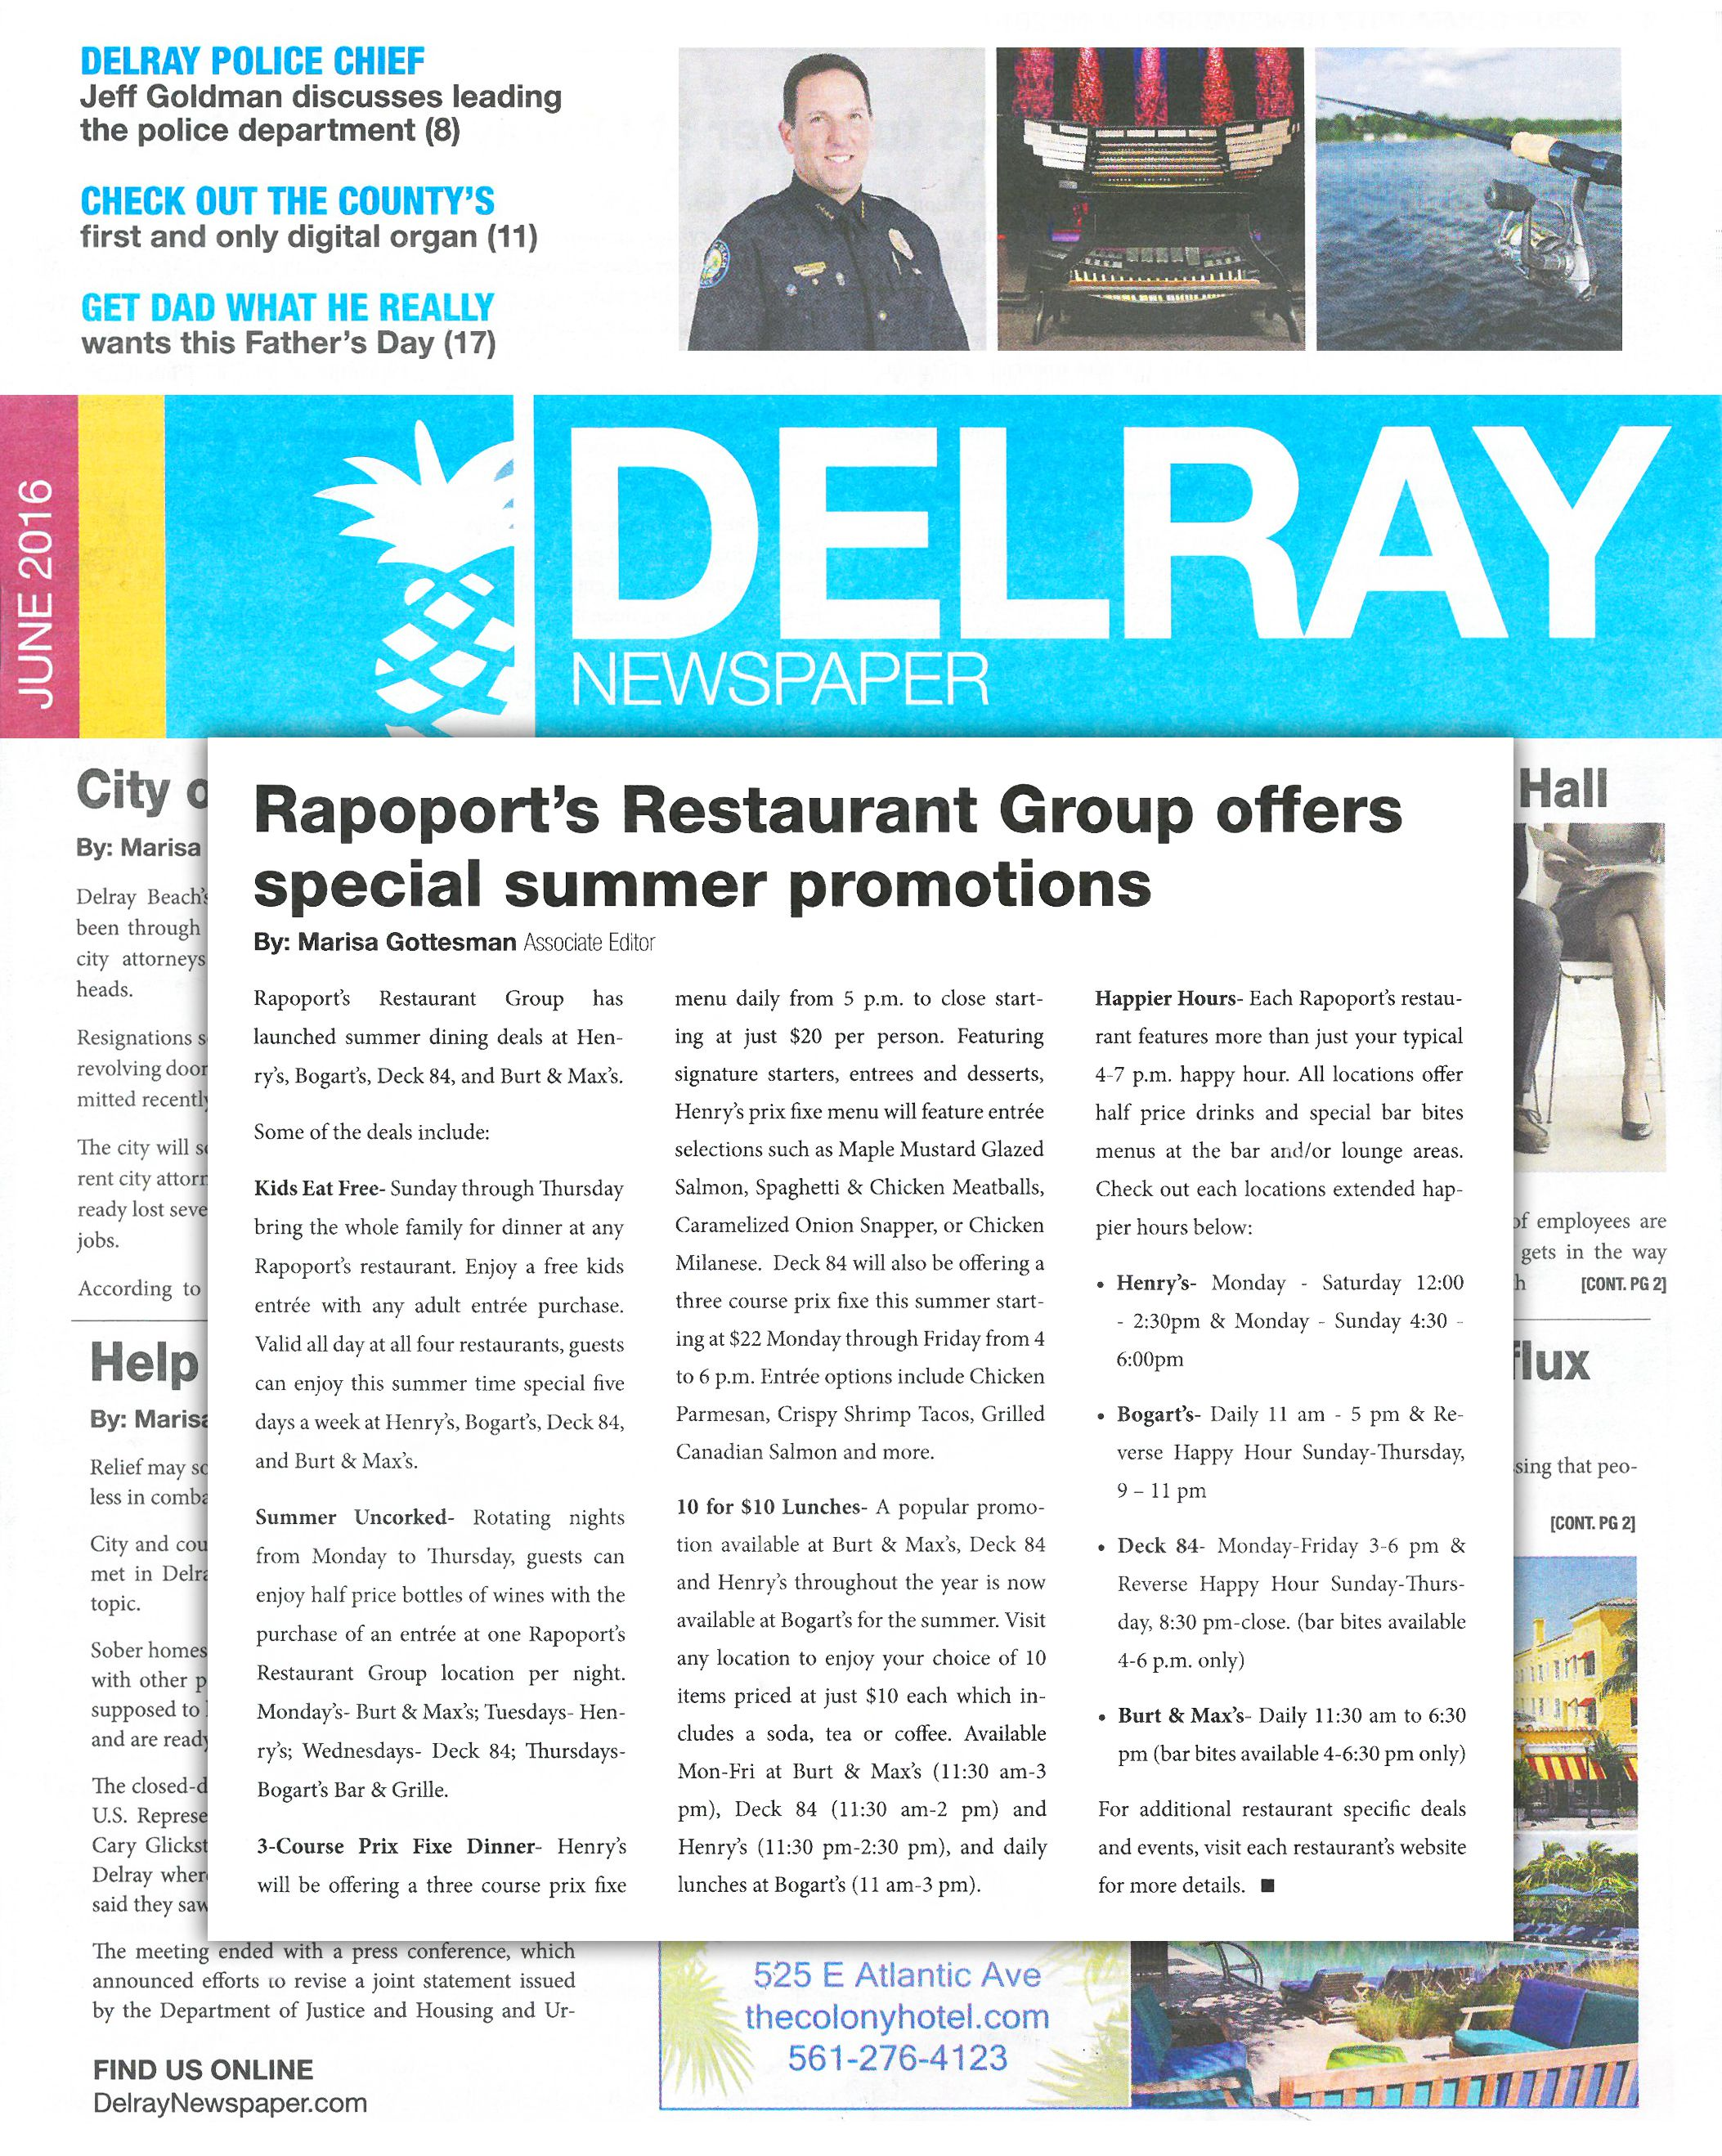 Delray-Newspaper-June-2016.jpg